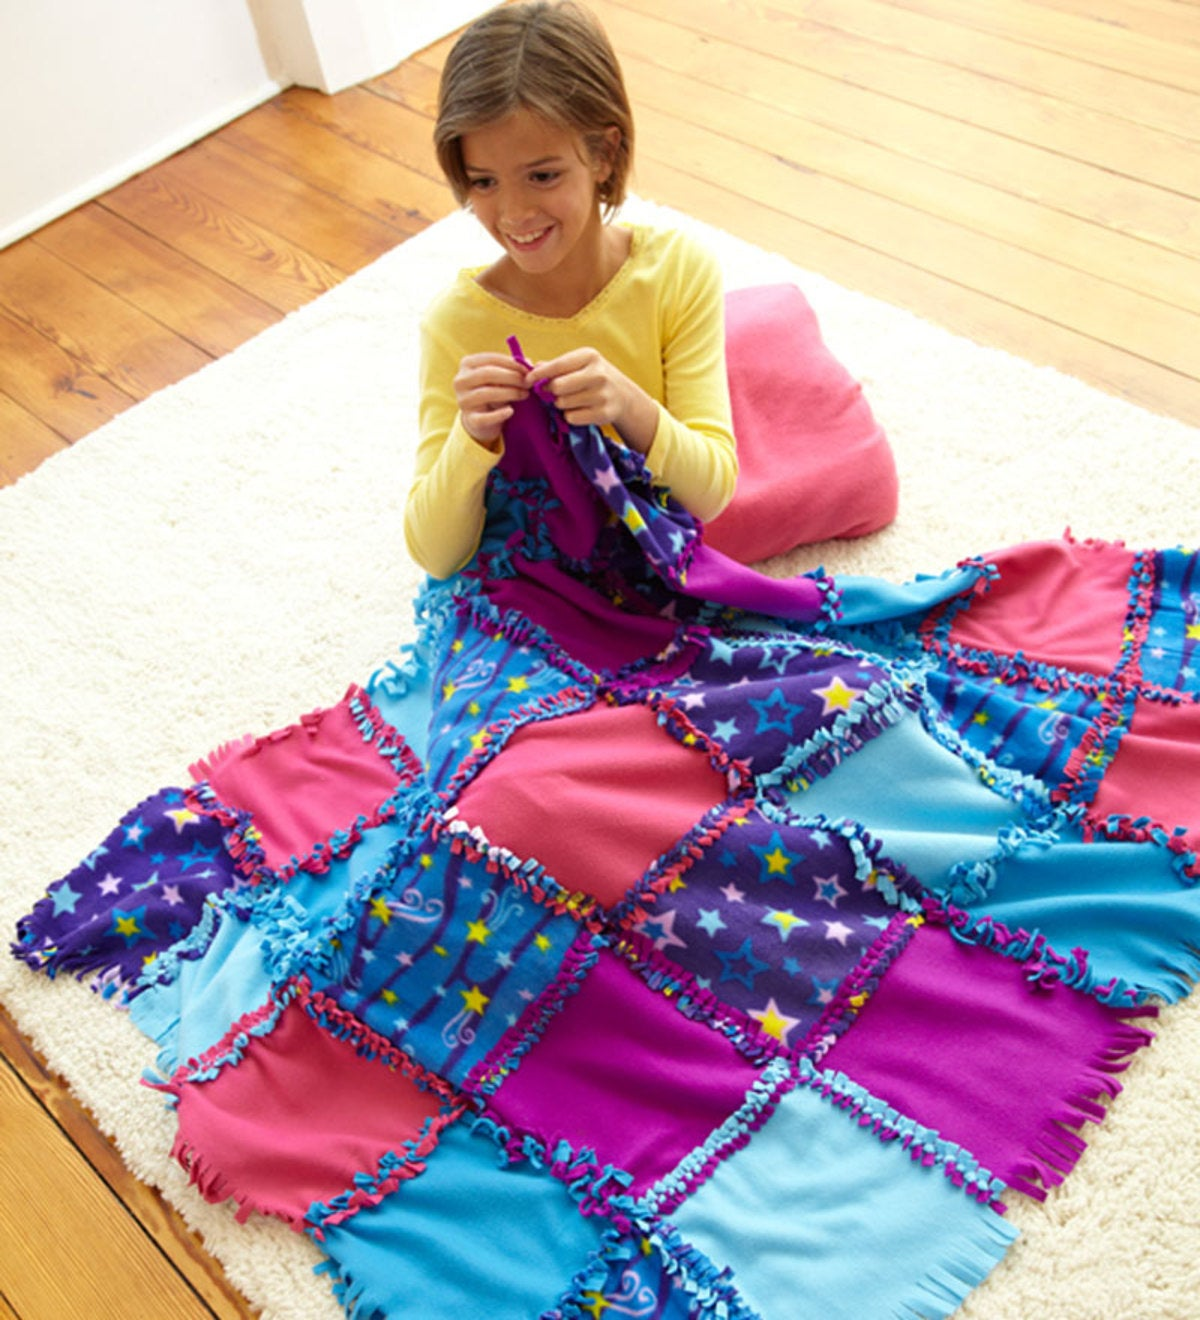 Fleece Starry Sky Knot-A-Quilt No Sew Craft Kit